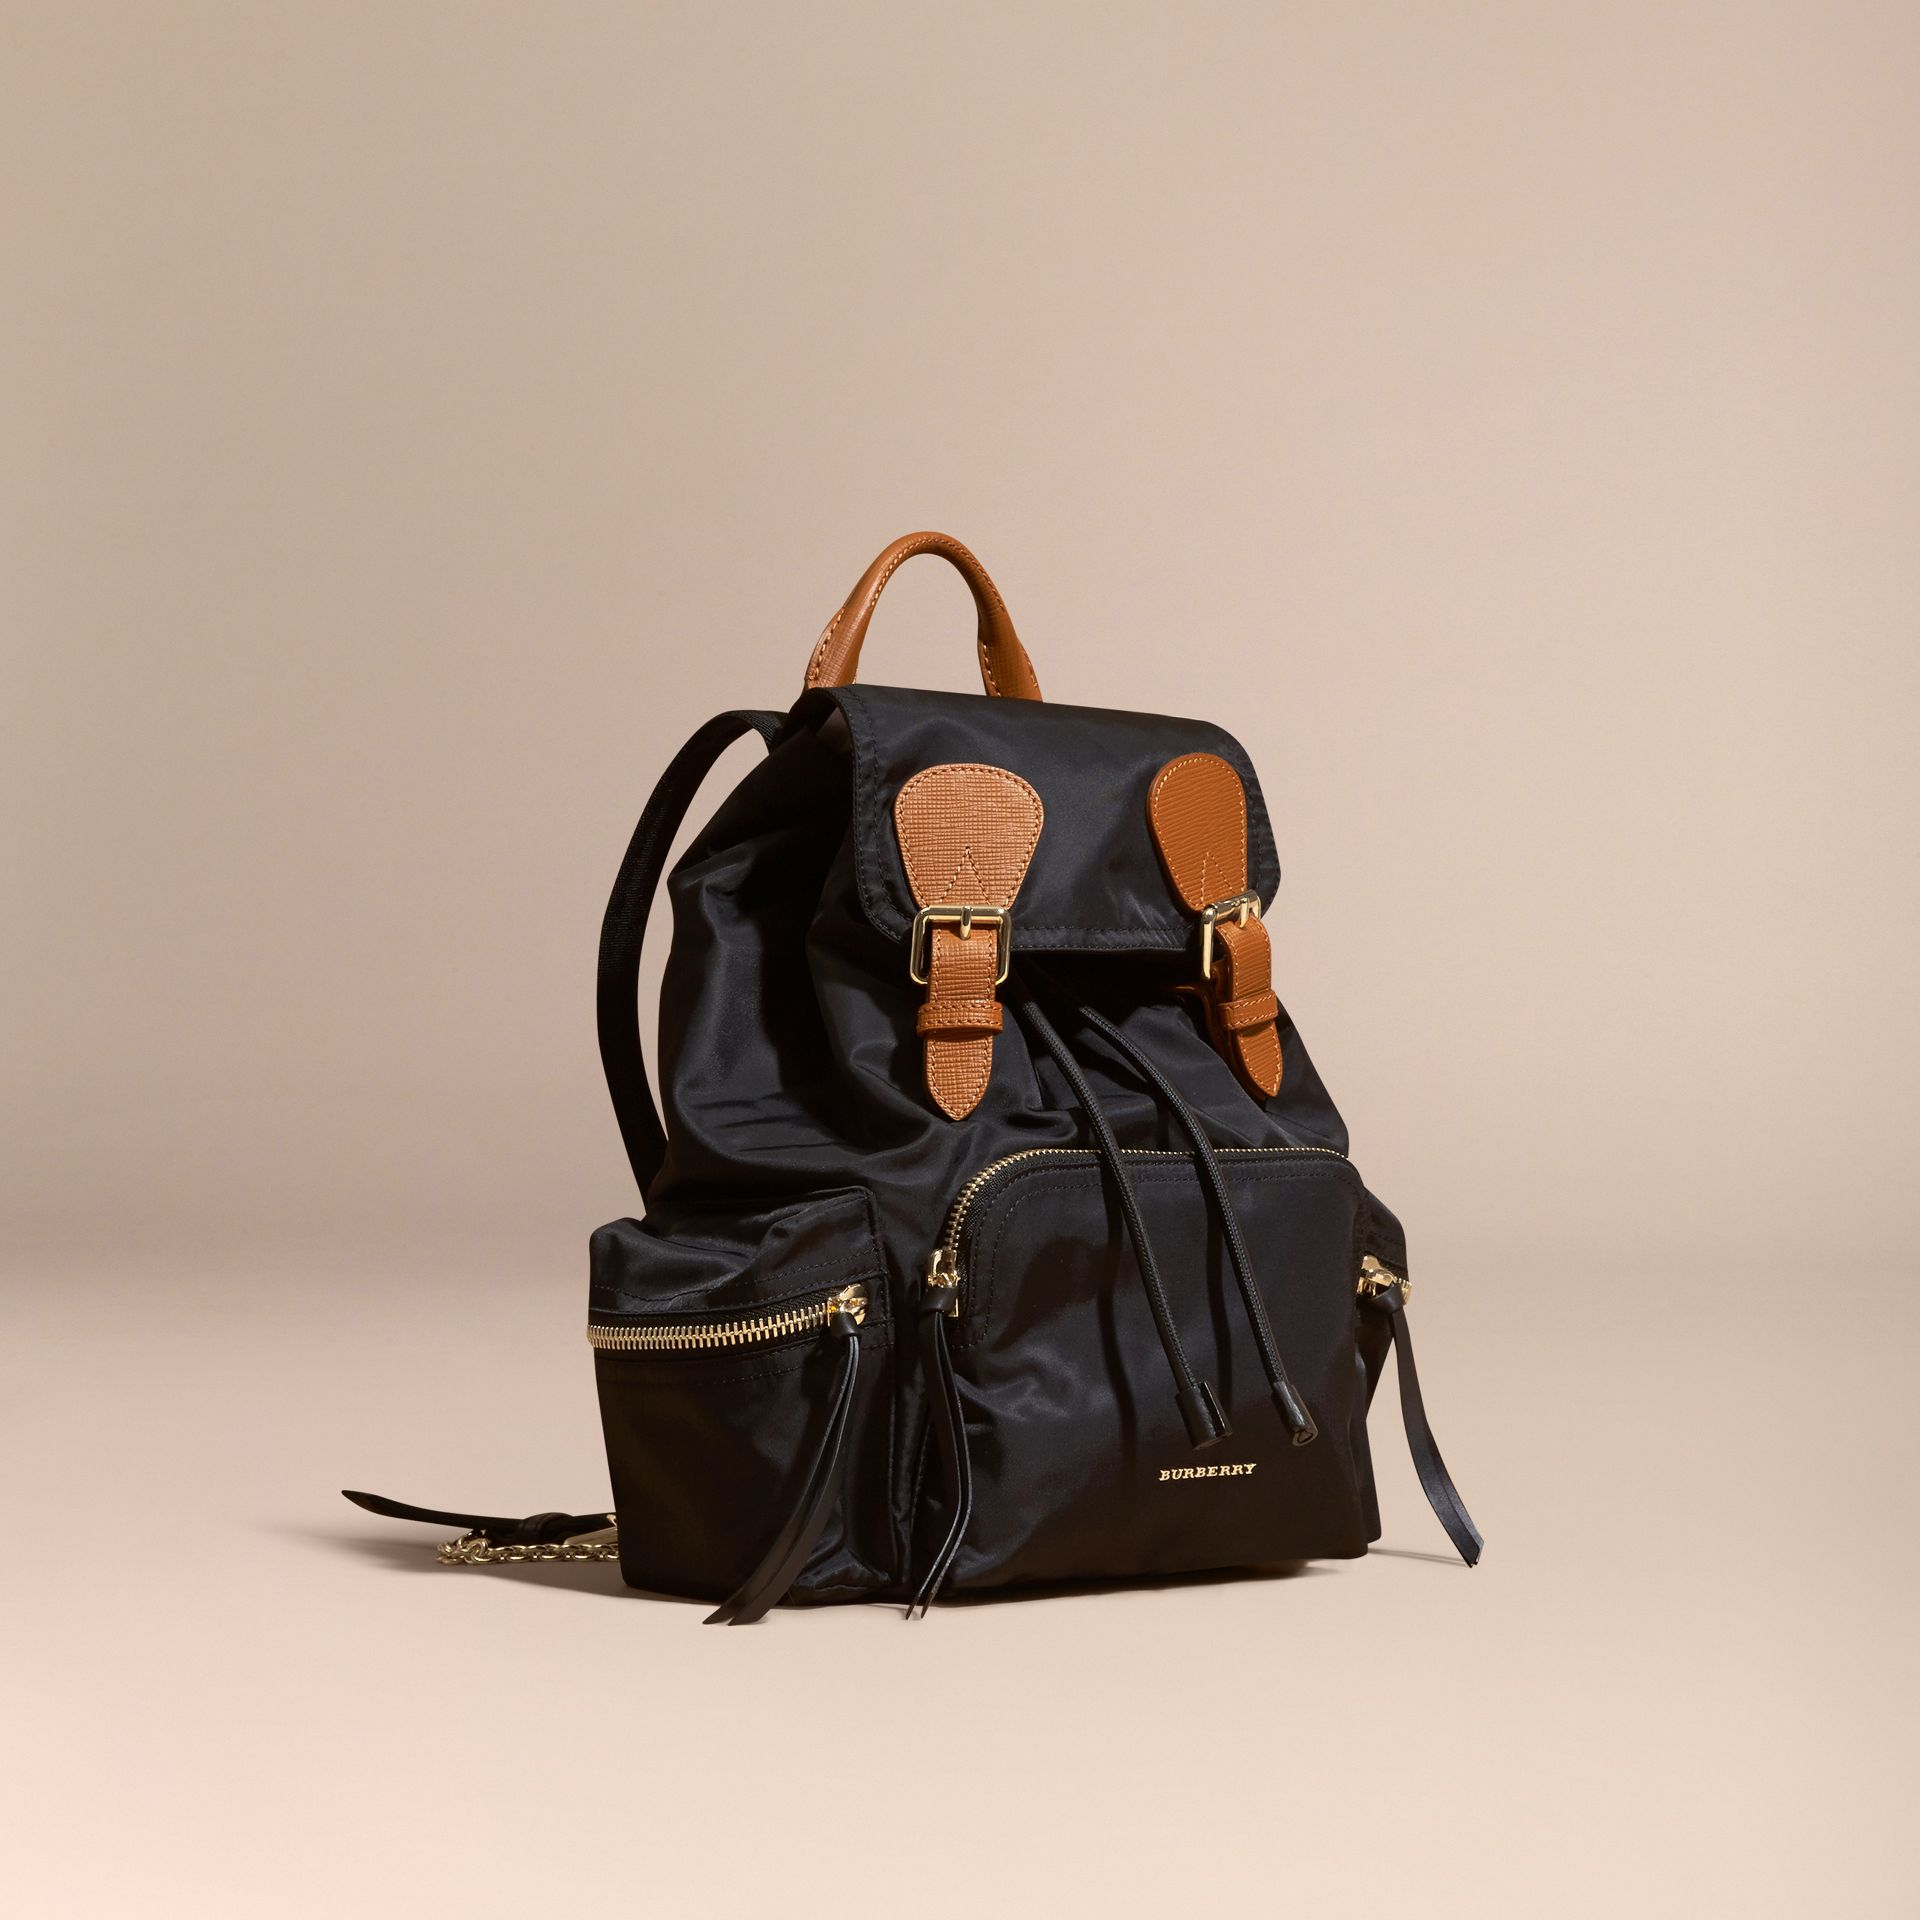 Black The Medium Rucksack in Technical Nylon and Leather Black - gallery image 1